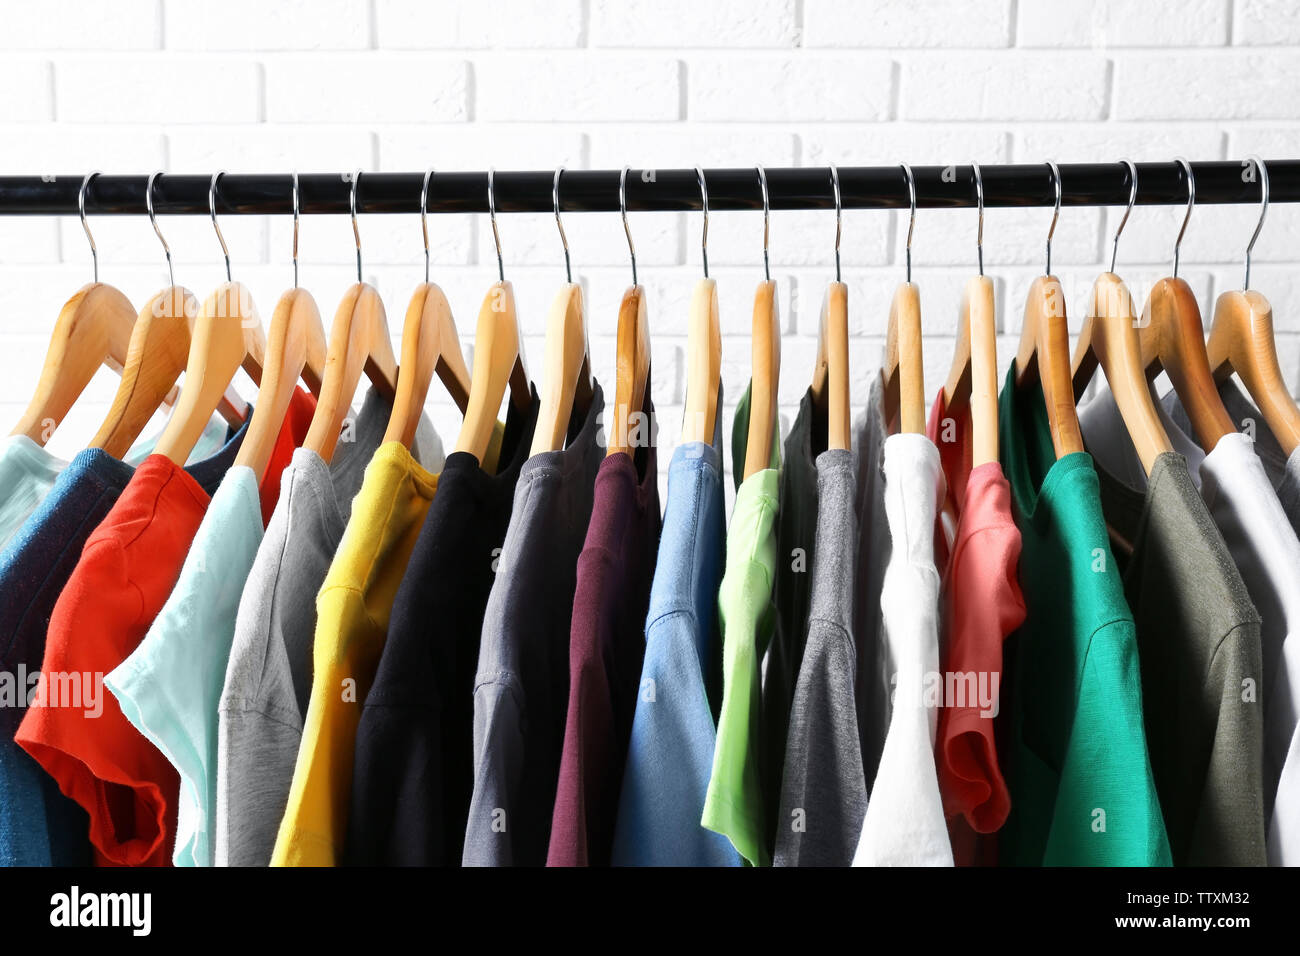 Colorful t-shirts on hangers against brick wall, close up